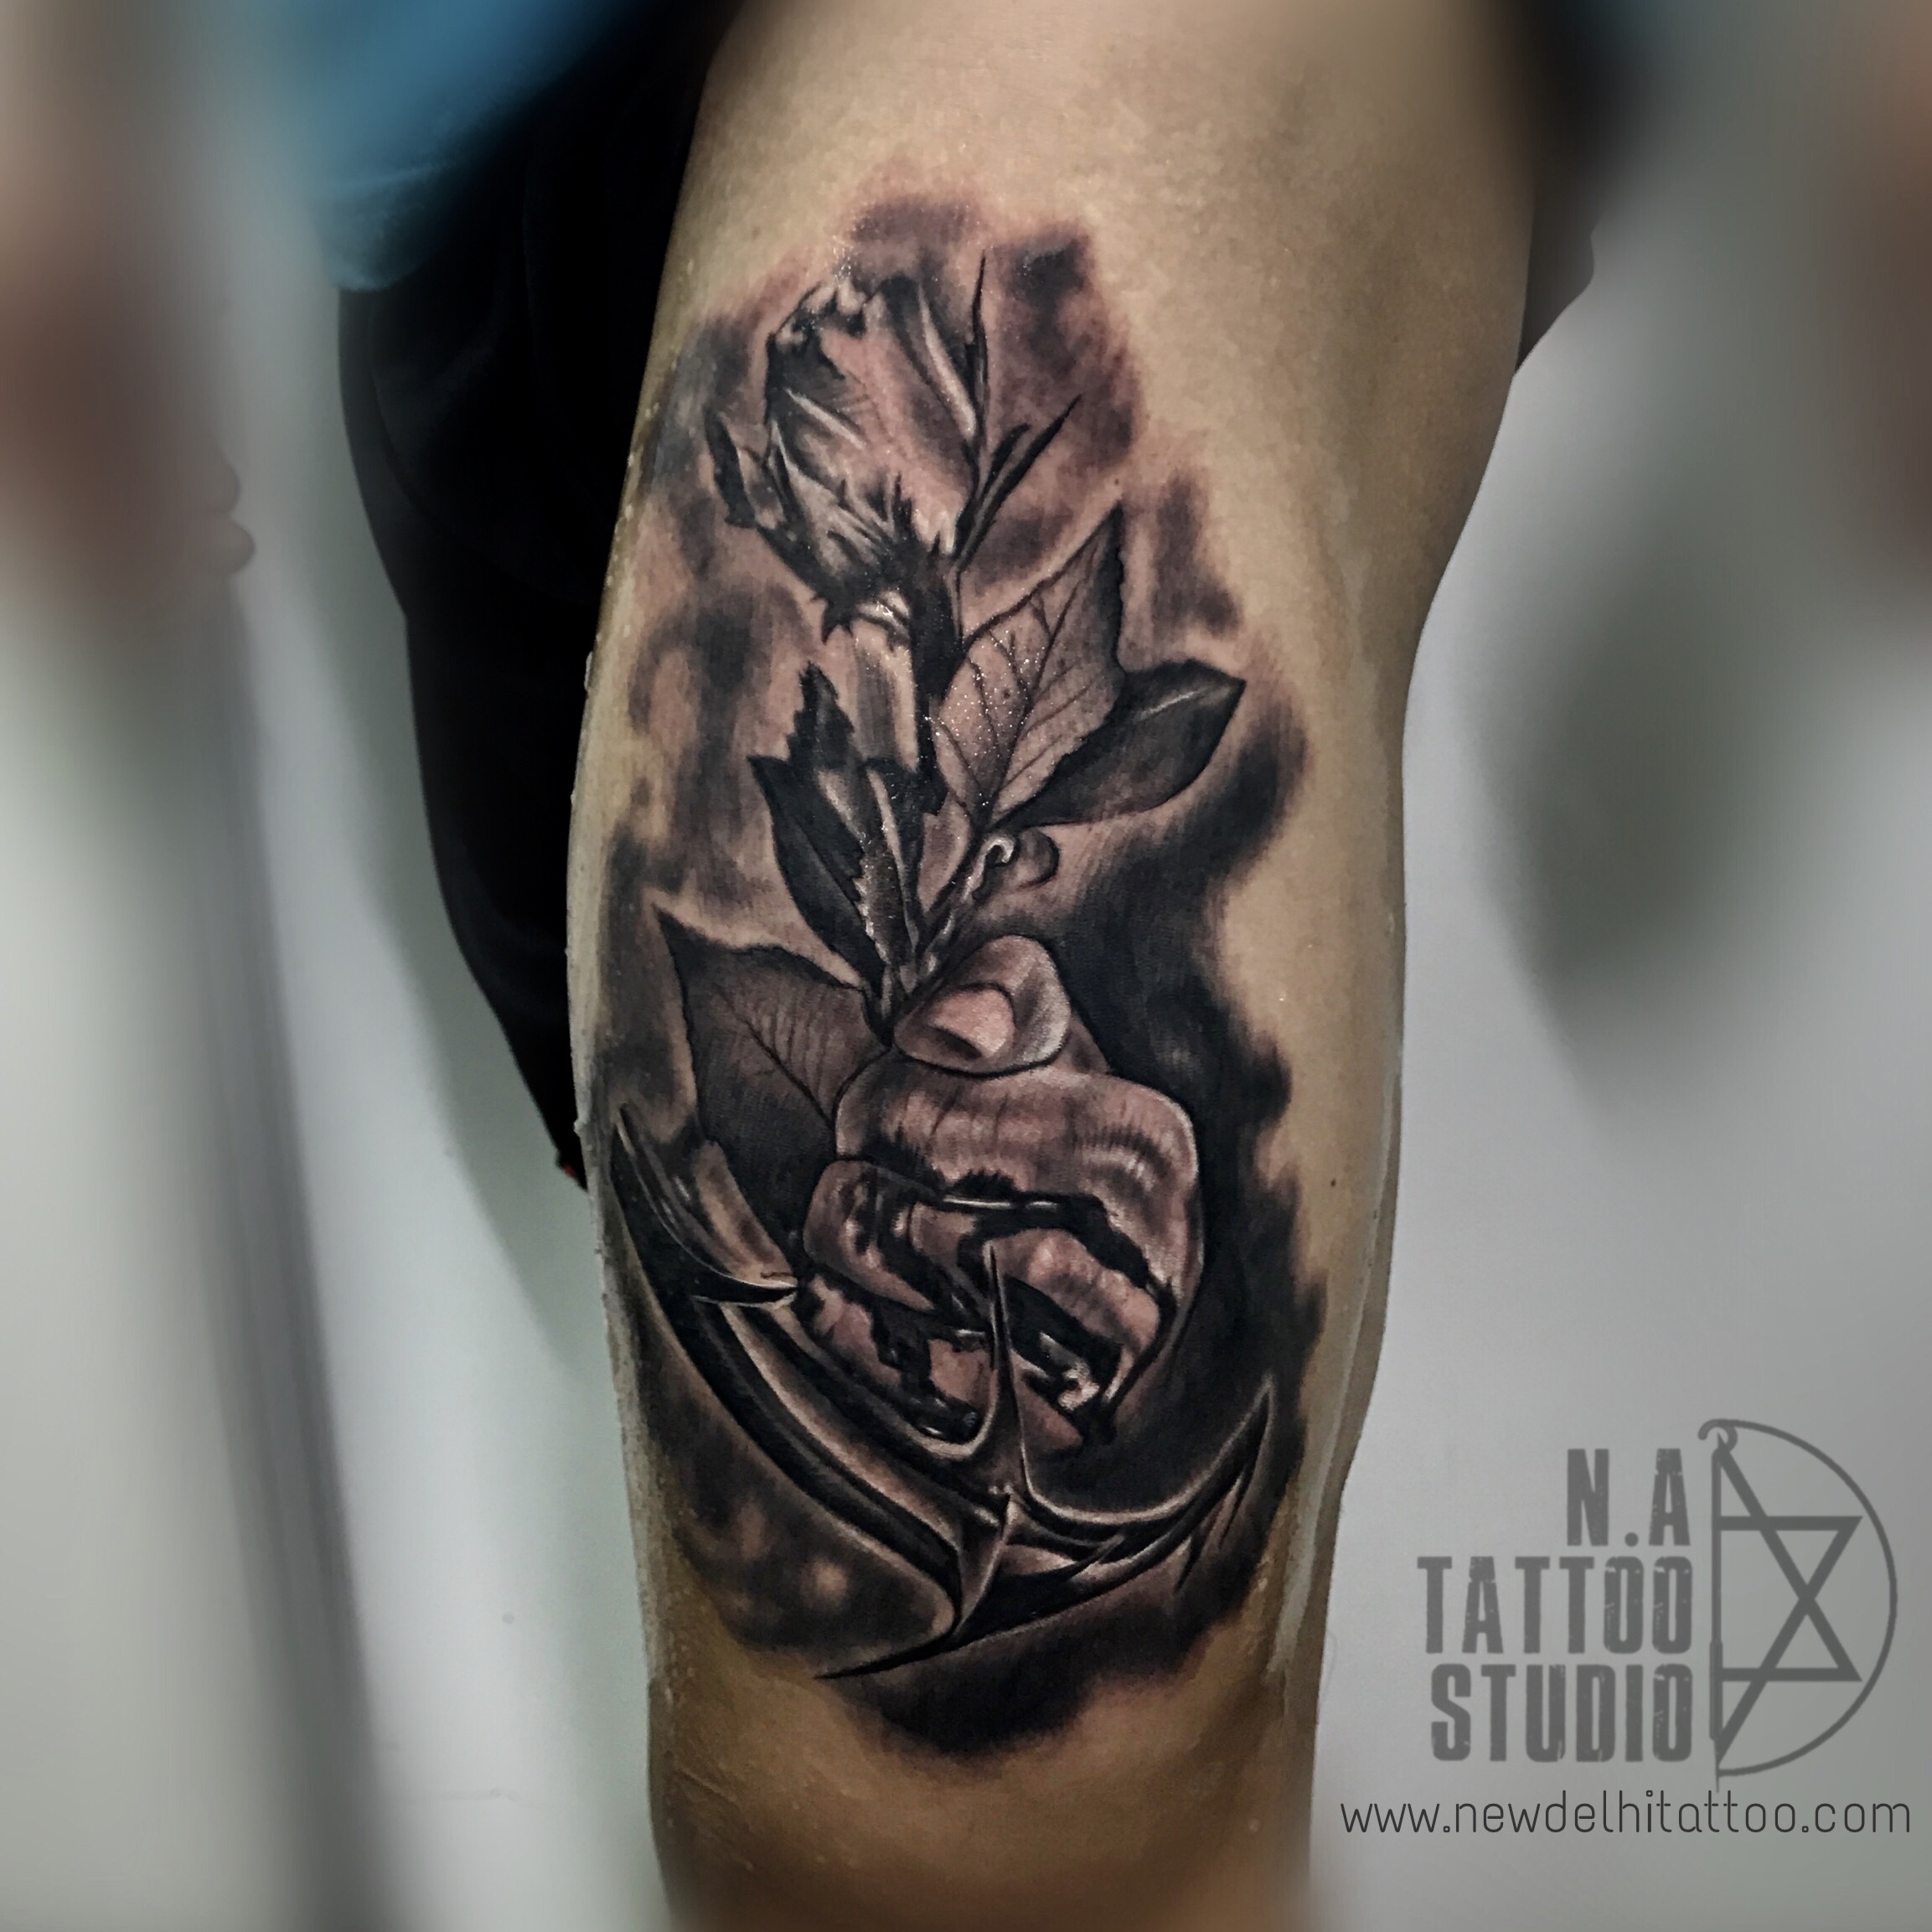 anchor-rose tattoo natattoostudio